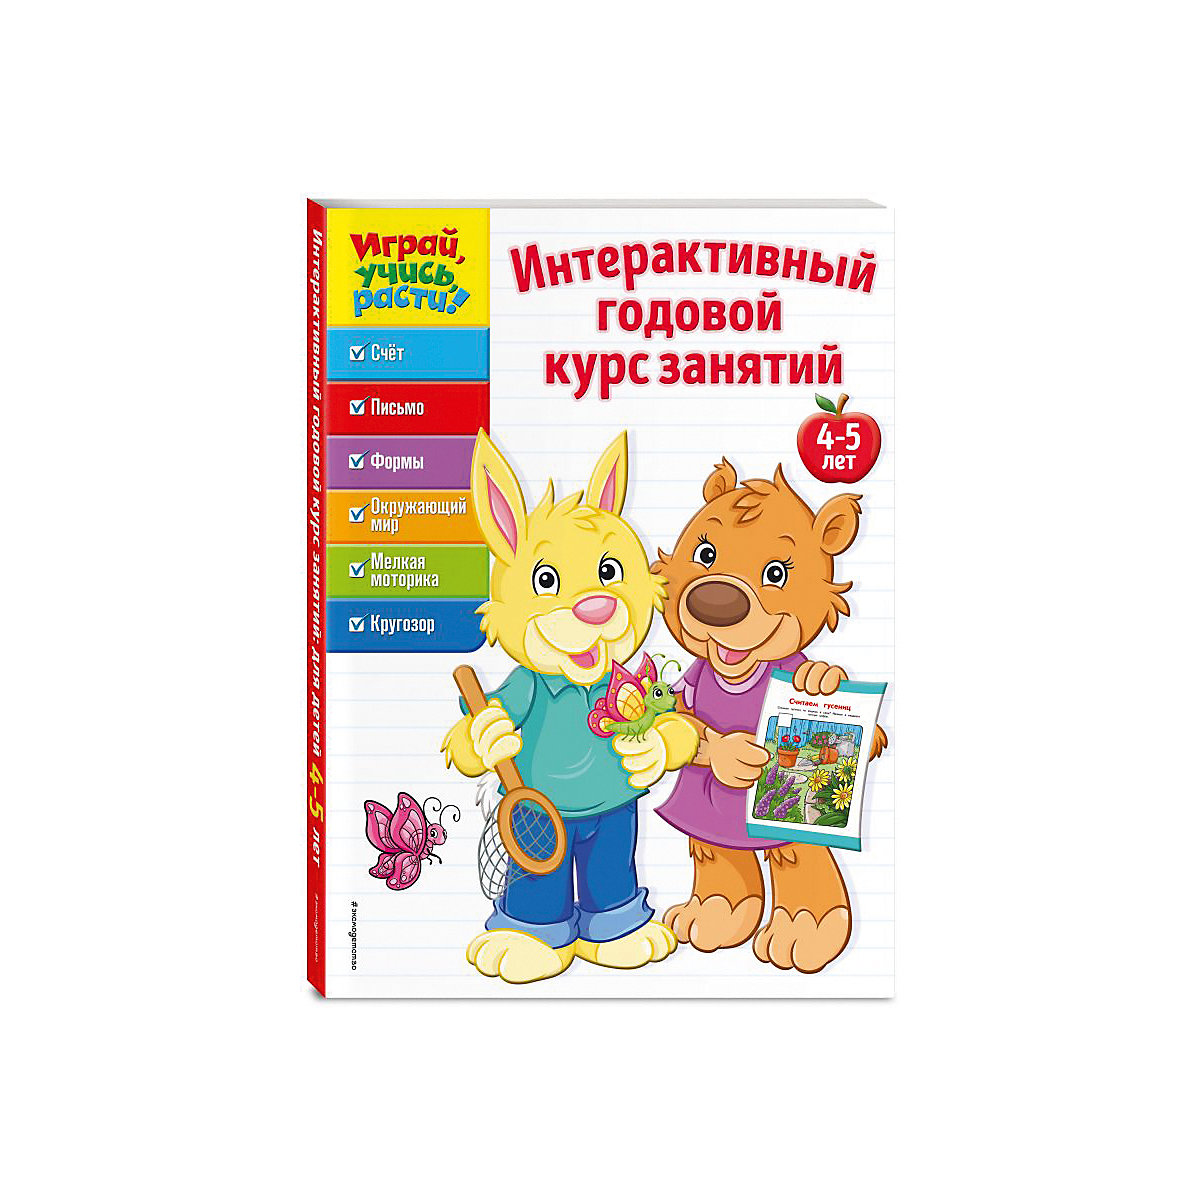 Books EKSMO 8676425 Children Education Encyclopedia Alphabet Dictionary Book For Baby MTpromo